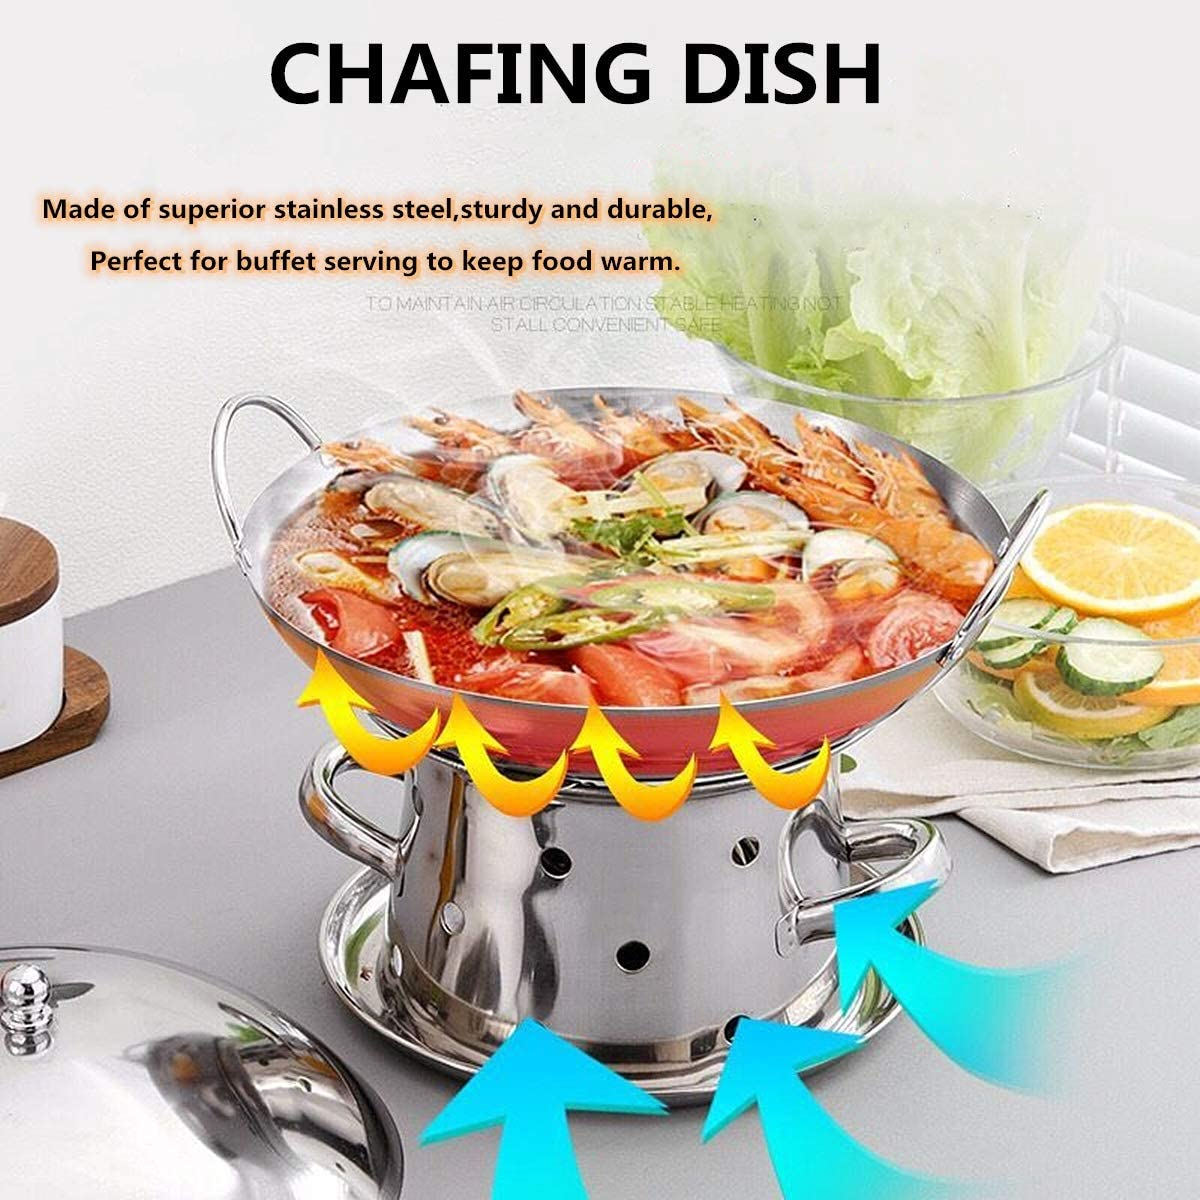 Stainless Steel Chafing Dish with Pans and Fuel Holders Mini ...